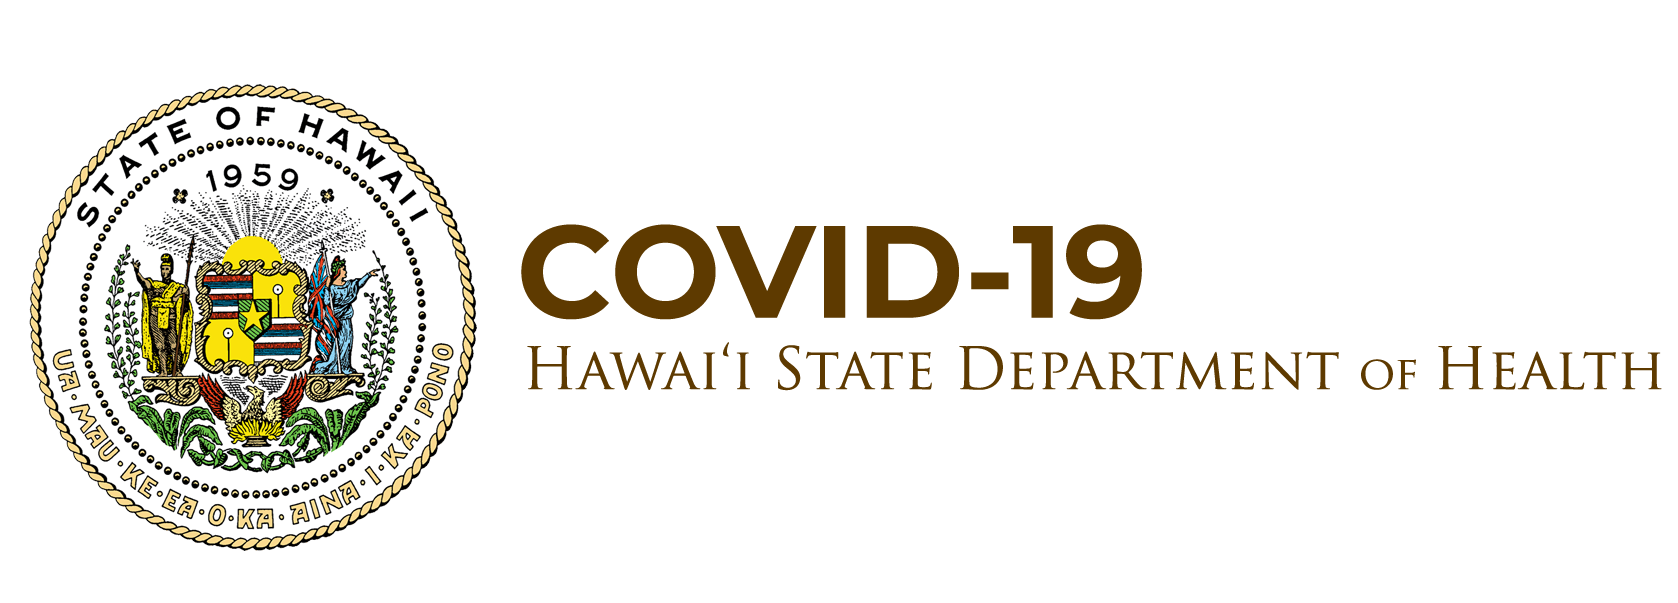 State of Hawaii COVID-19